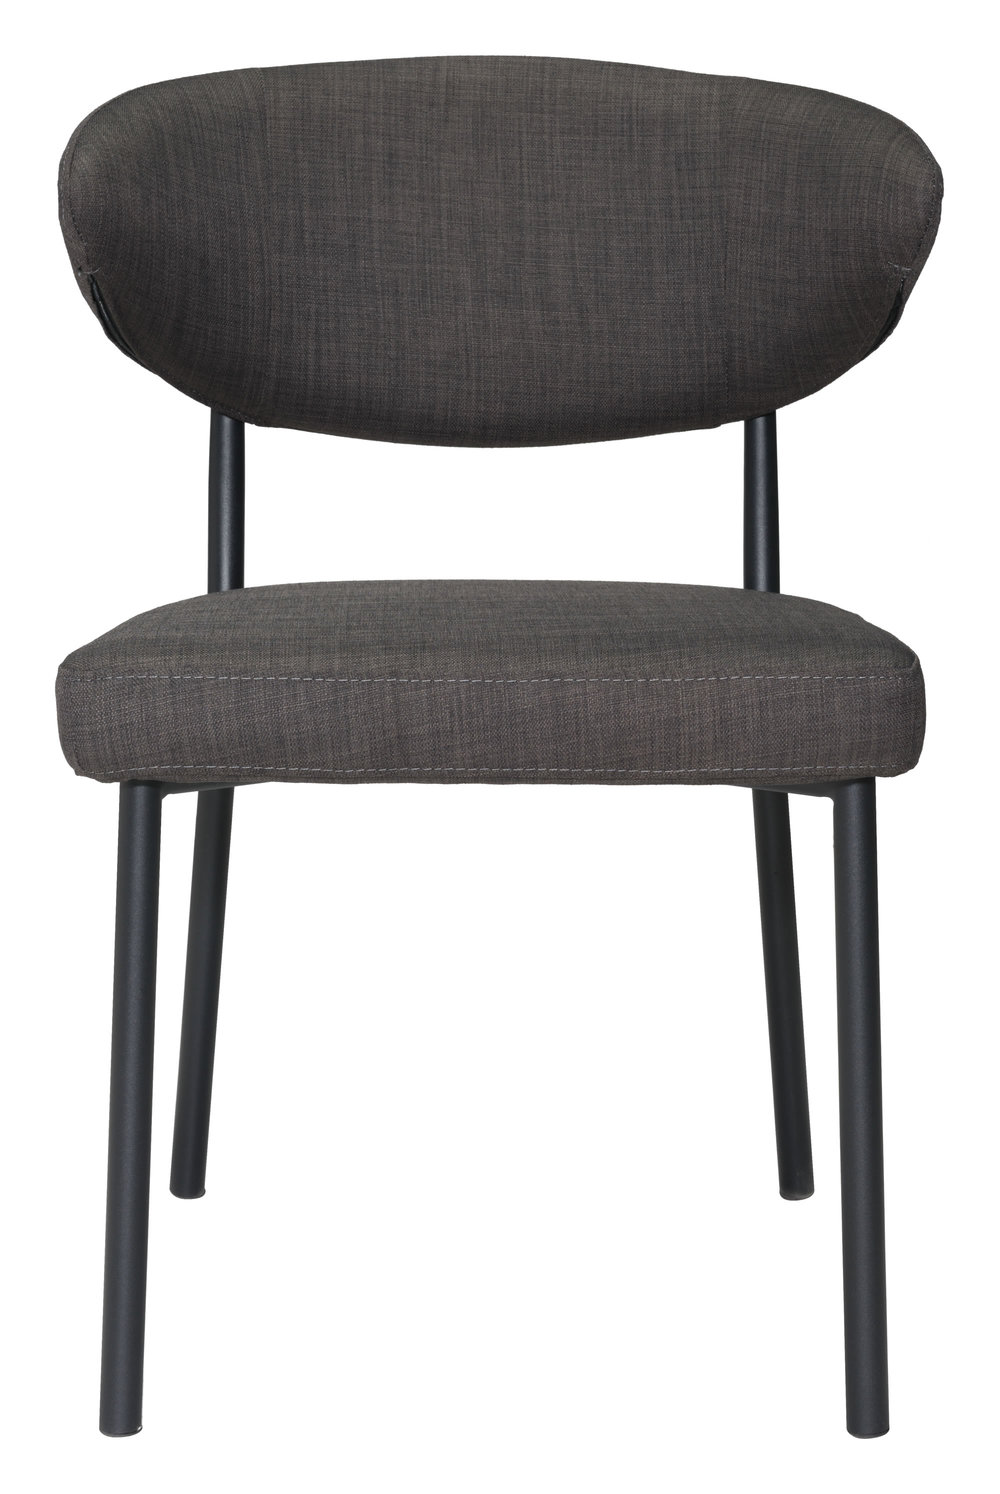 Zuo Modern Contemporary - Pontus Dining Chair - Set of 2 - Charcoal Gray